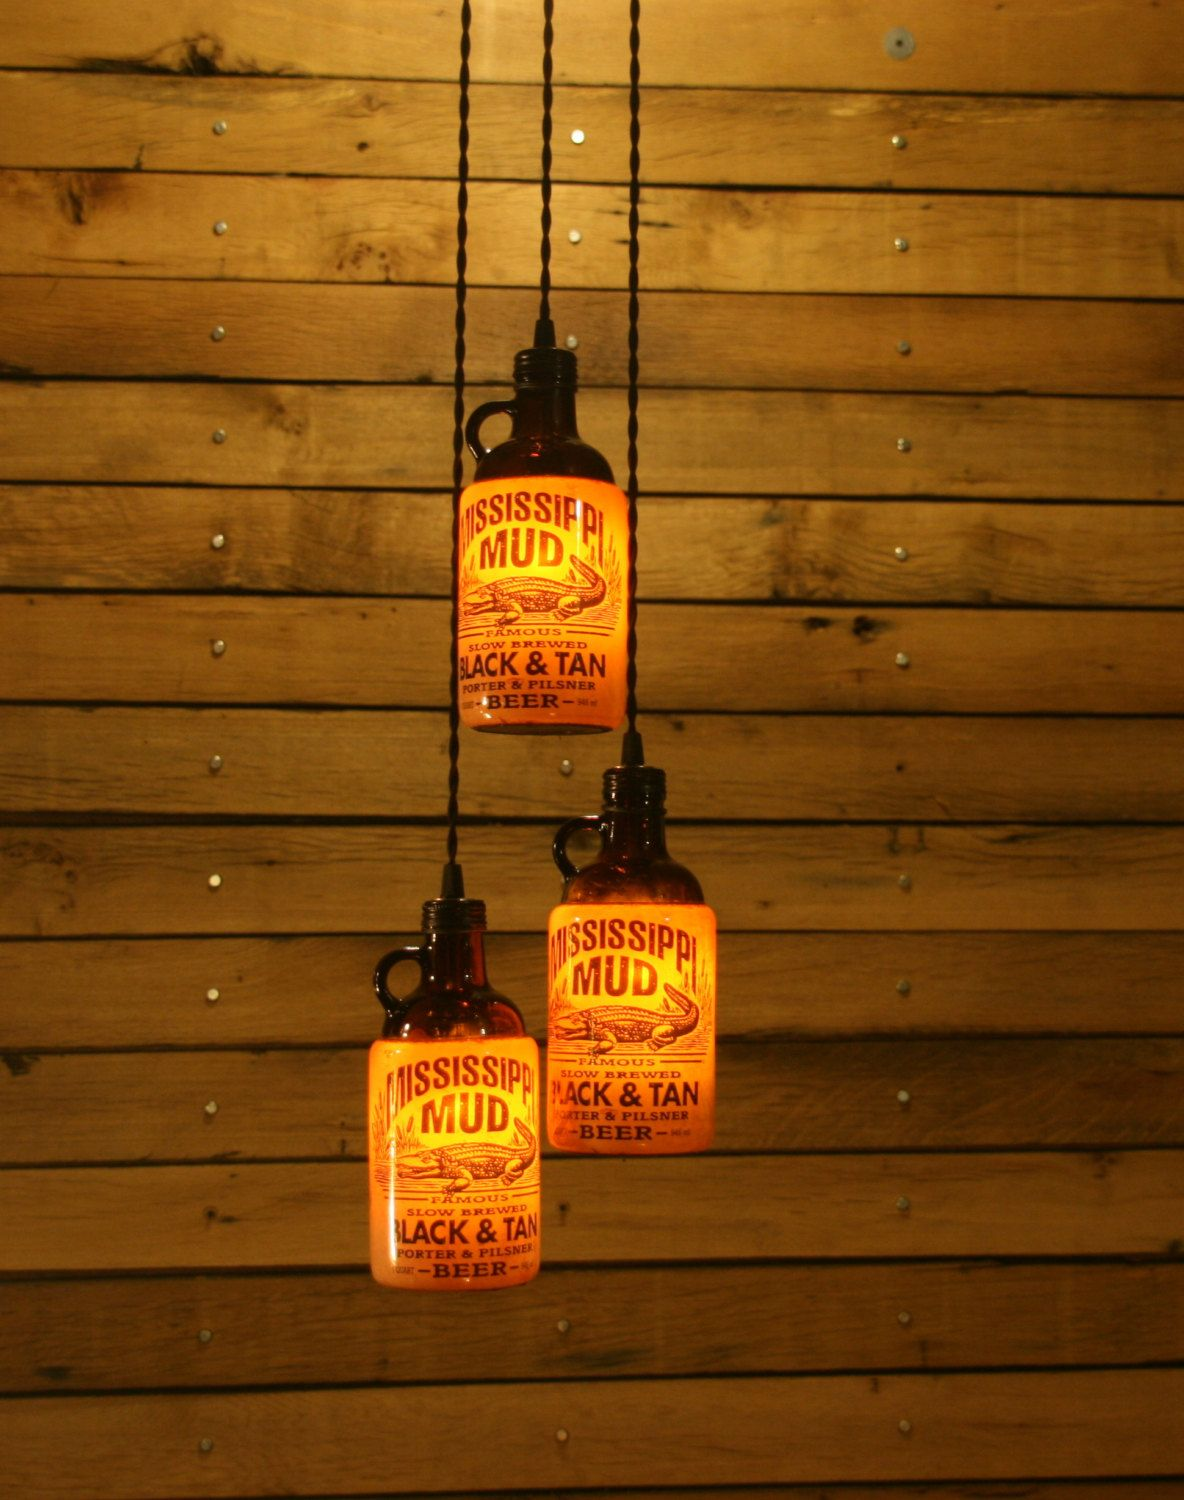 The Ultimate Beer Bottle Pendant Light   Bar Light   Bar Room Light  Fixture. $54.00